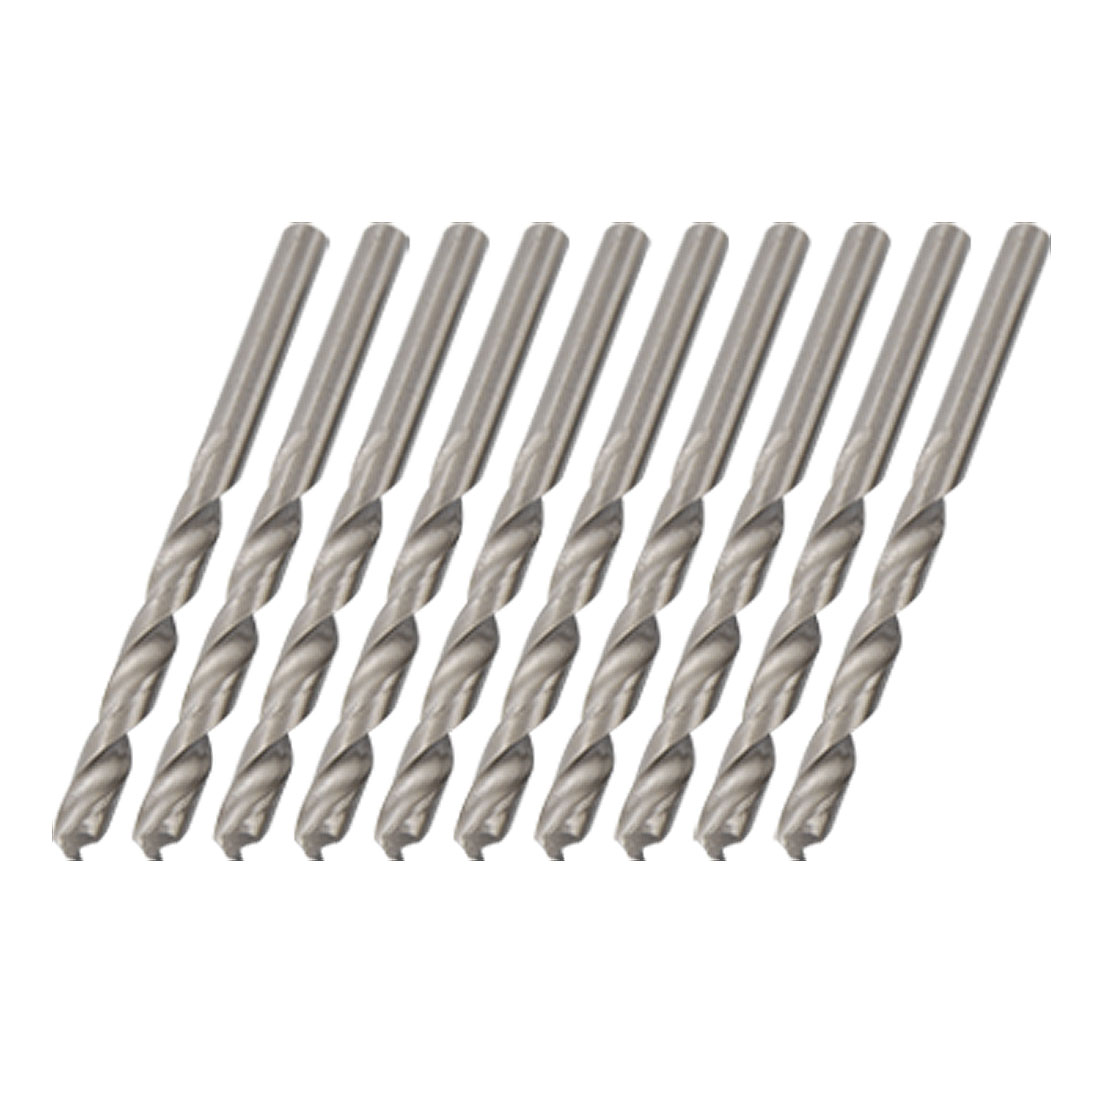 5.7mm Metal Drilling HSS Straight Shank Twist Drill Bits 10pcs